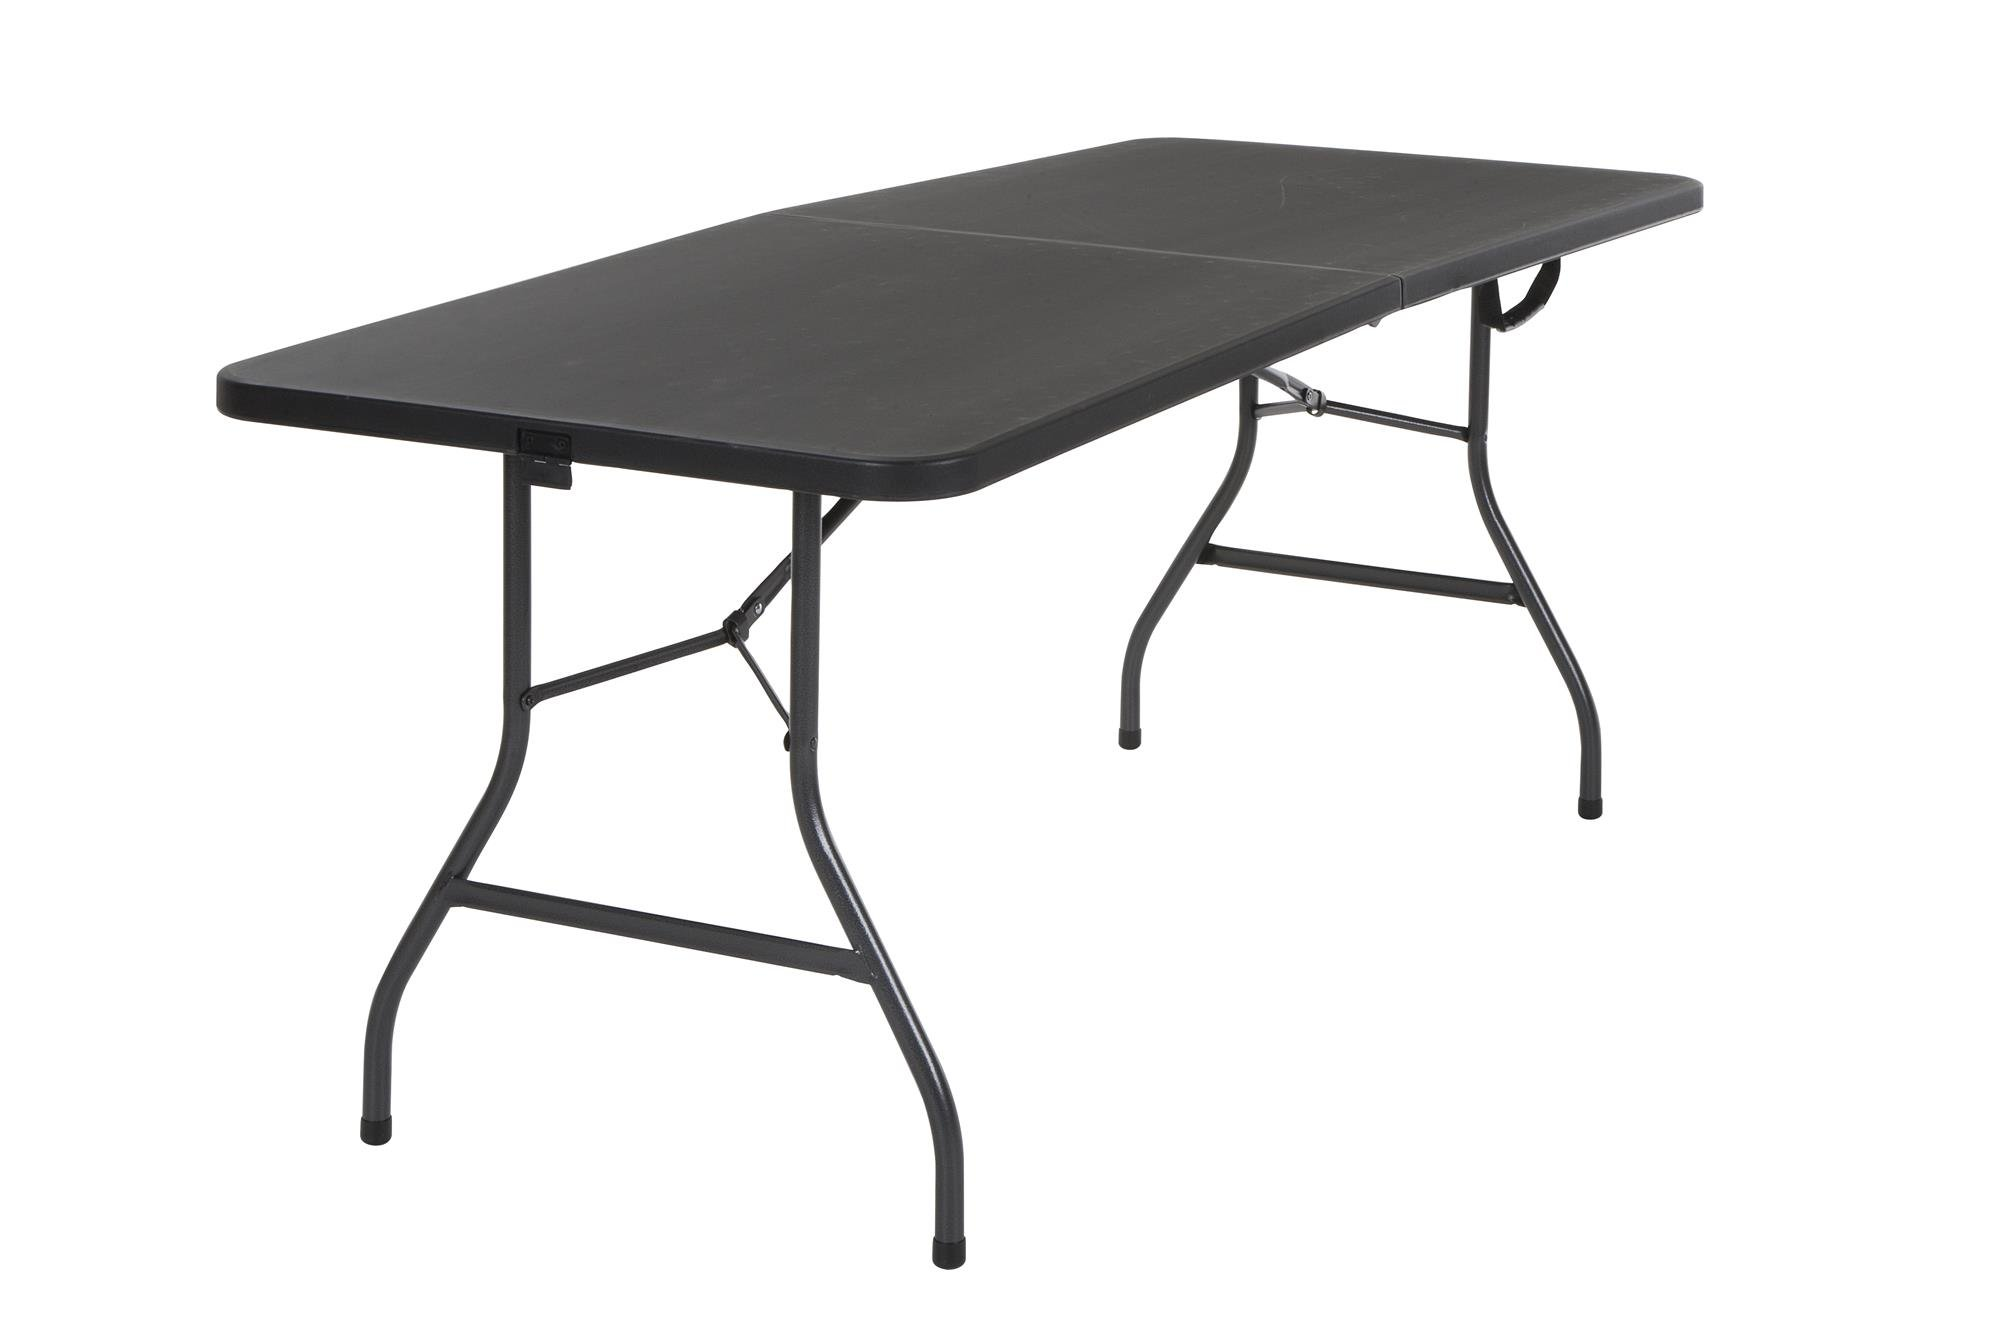 Cosco Deluxe 6 foot x 30 inch Fold-in-Half Blow Molded Folding Table, Black by Cosco